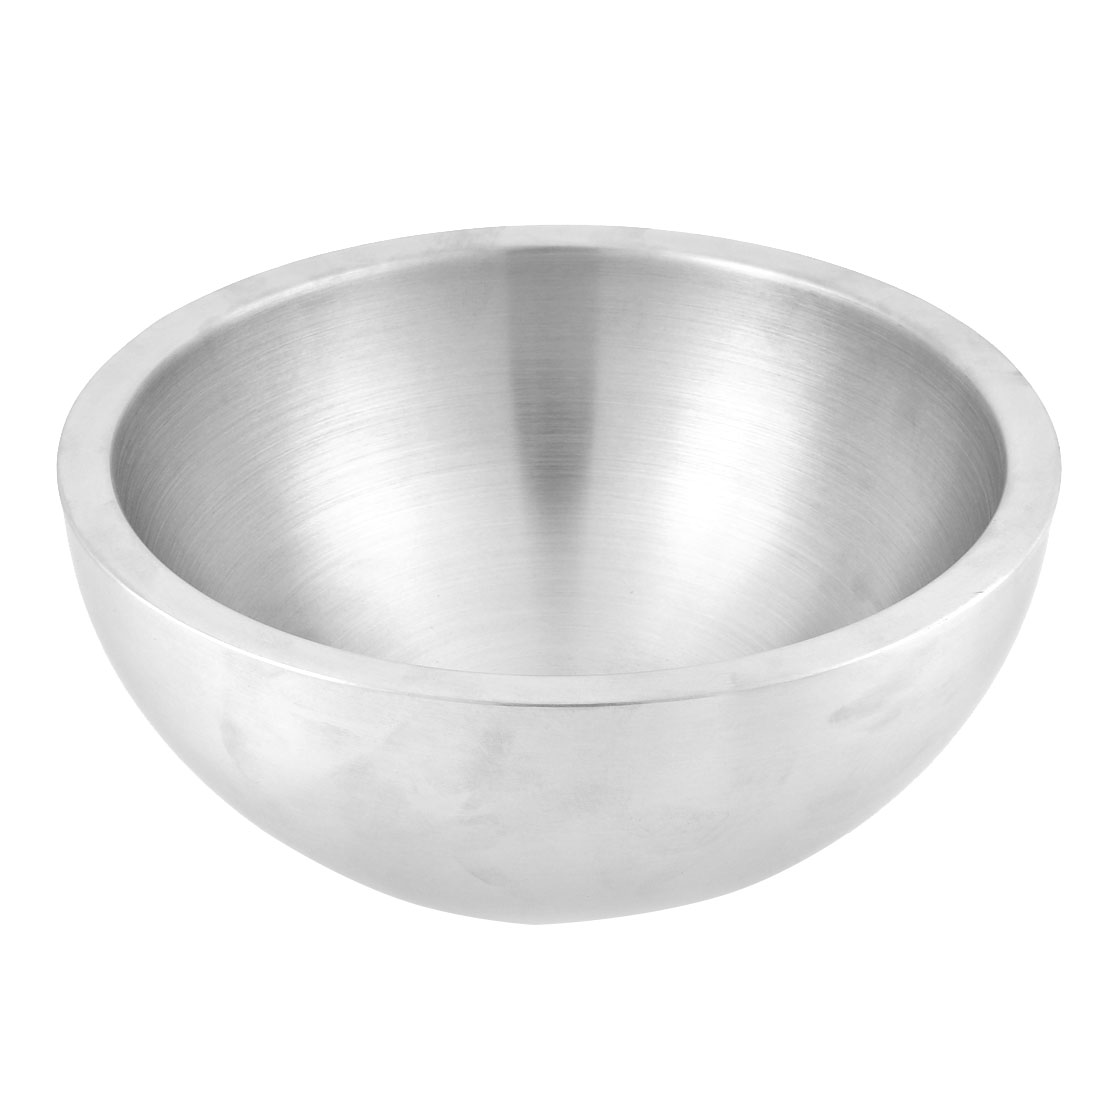 Home Restaurant Concise Style Dual Walled Insulation Salad Bowl 24cm Dia